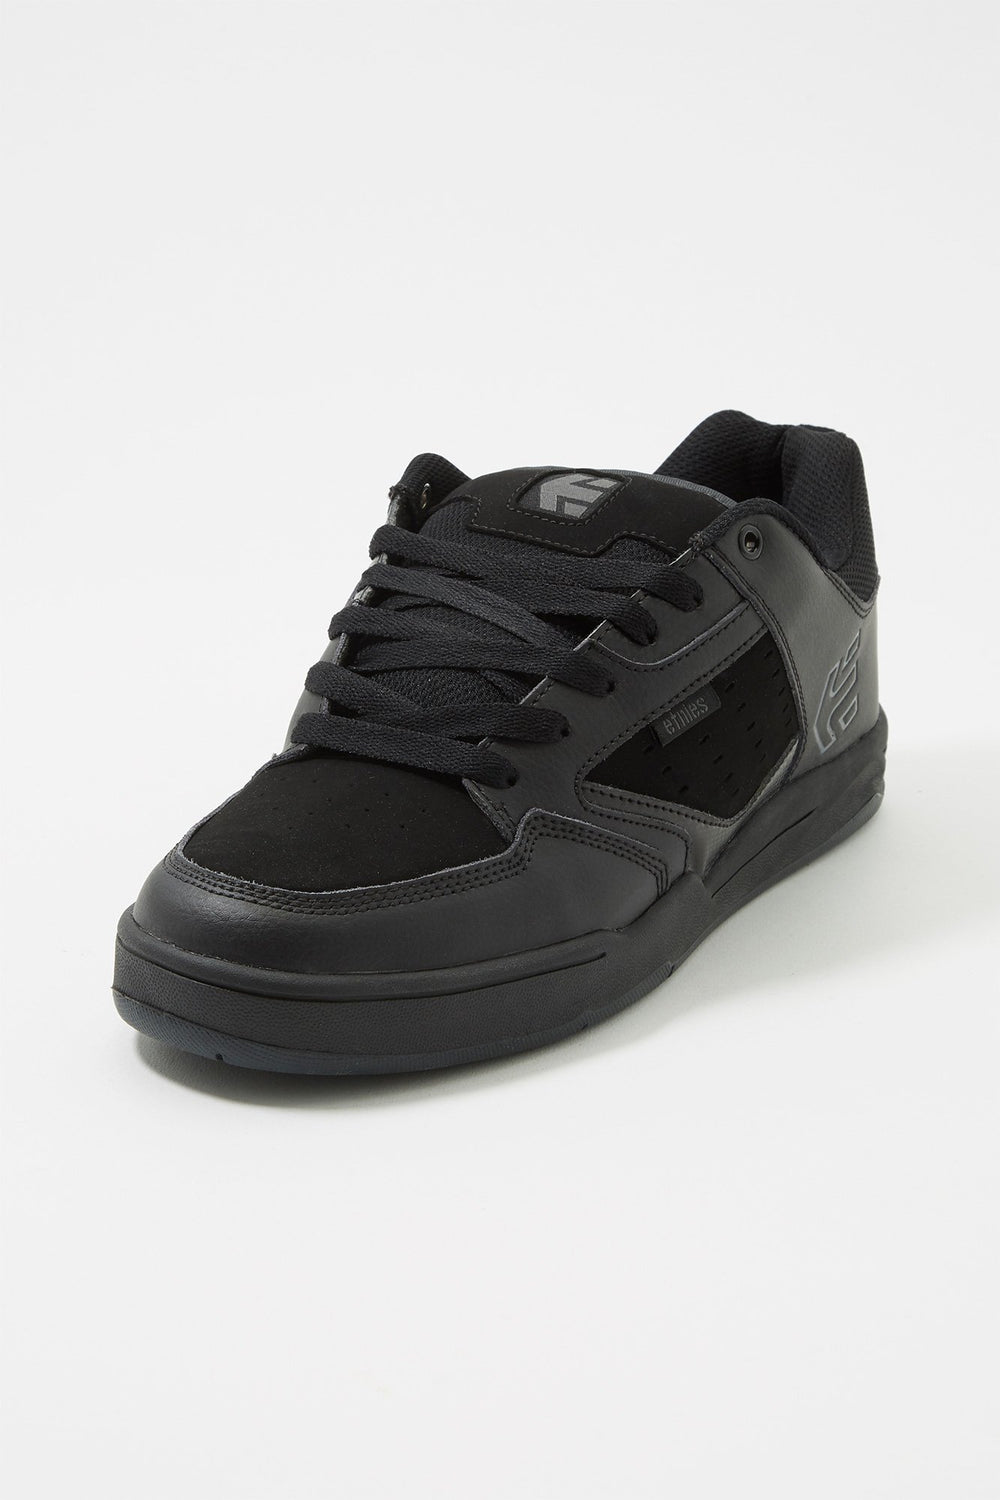 Etnies Mens All Black Cartel Skate Shoes Black